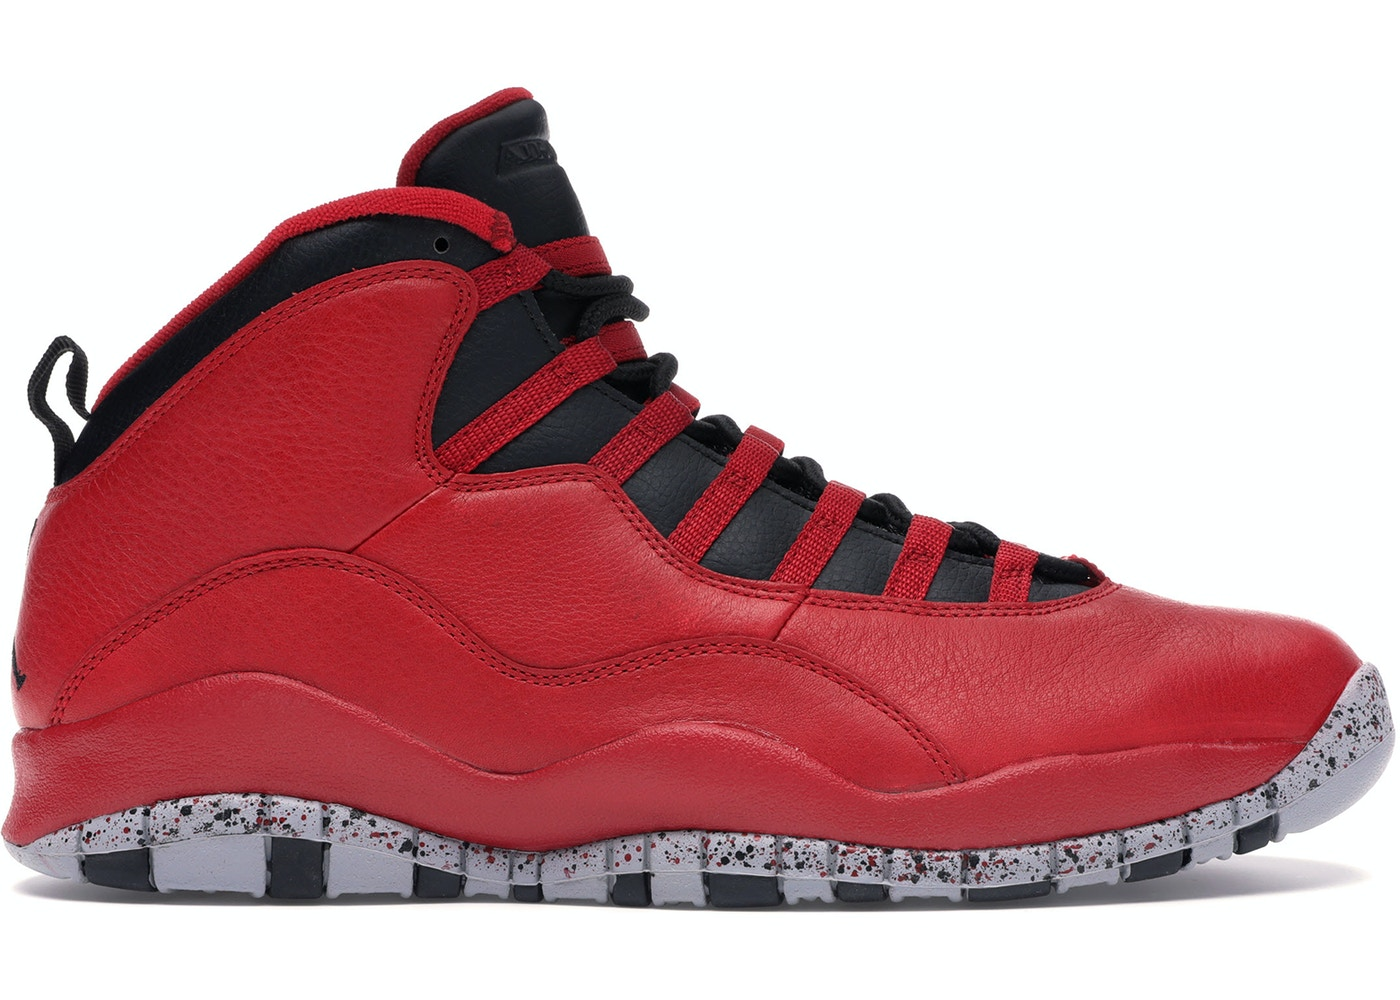 9307dea4227 Buy Air Jordan 10 Shoes & Deadstock Sneakers